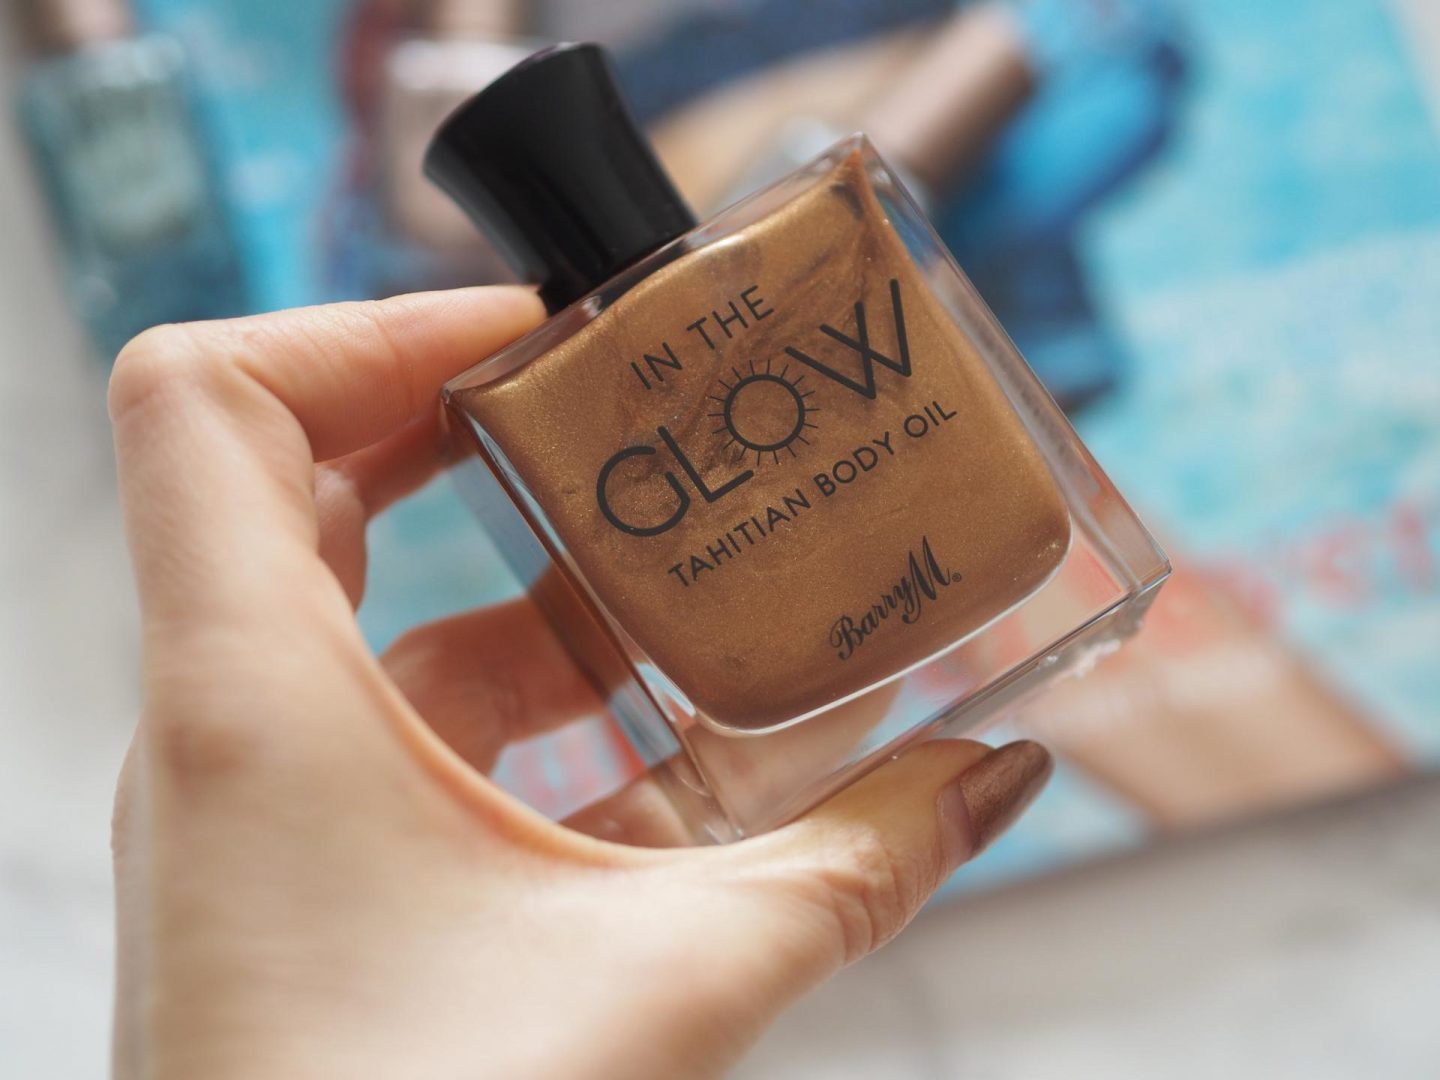 Barry M Glow Tahitian Body Oil